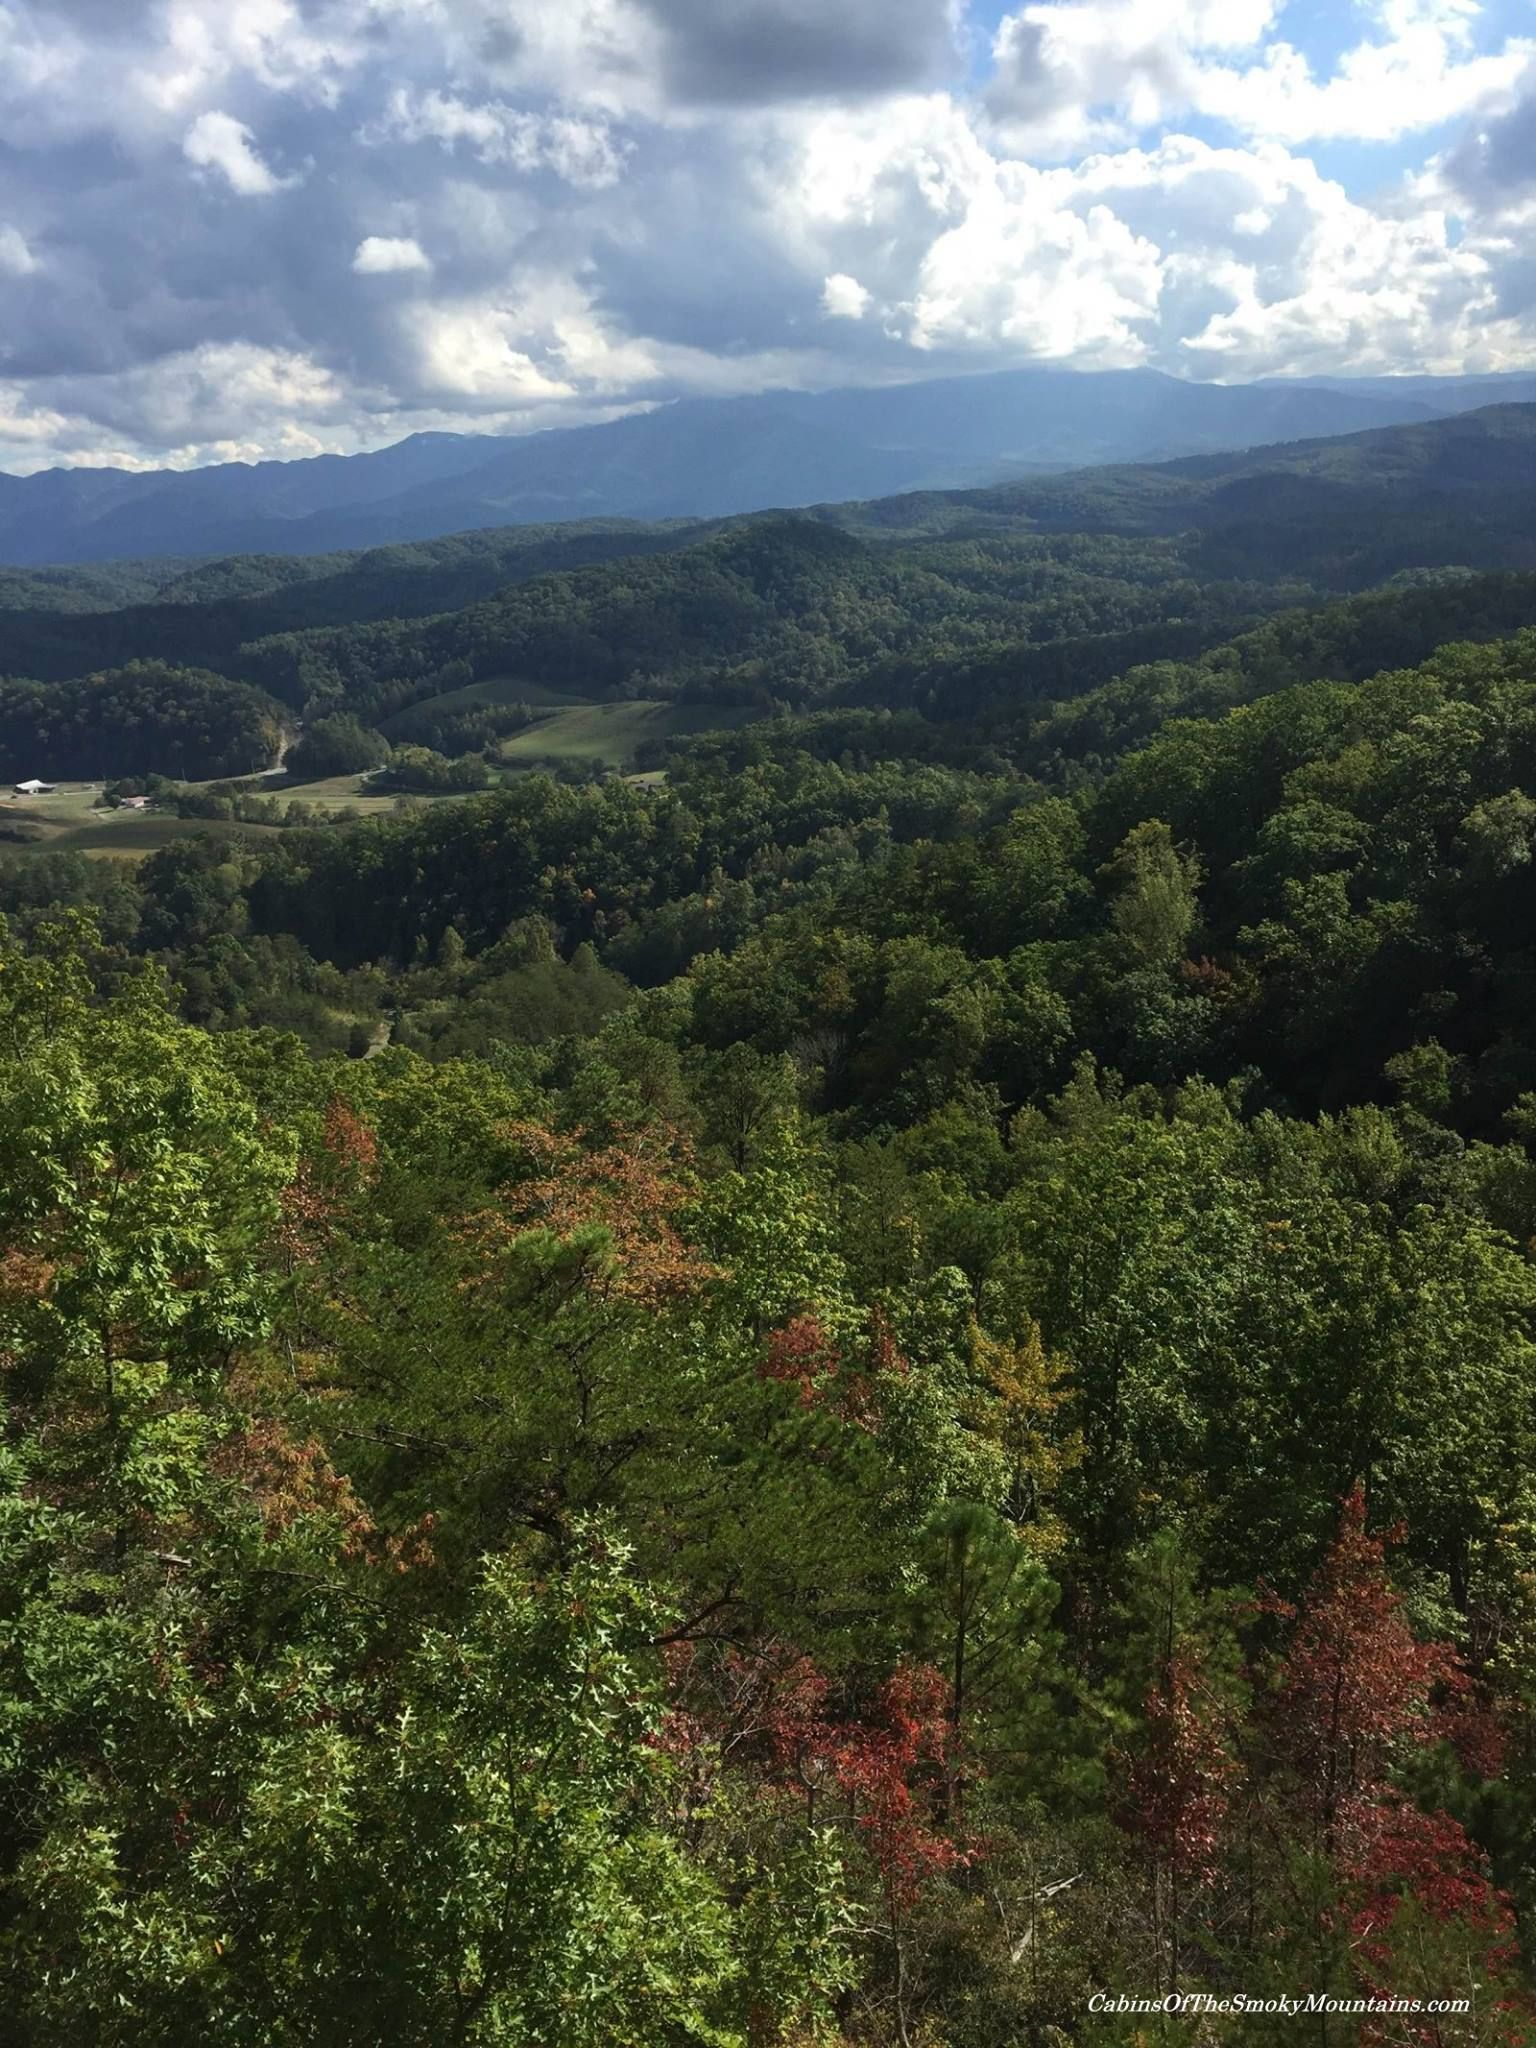 the view from legacy mountain resort, where we manage many cabins